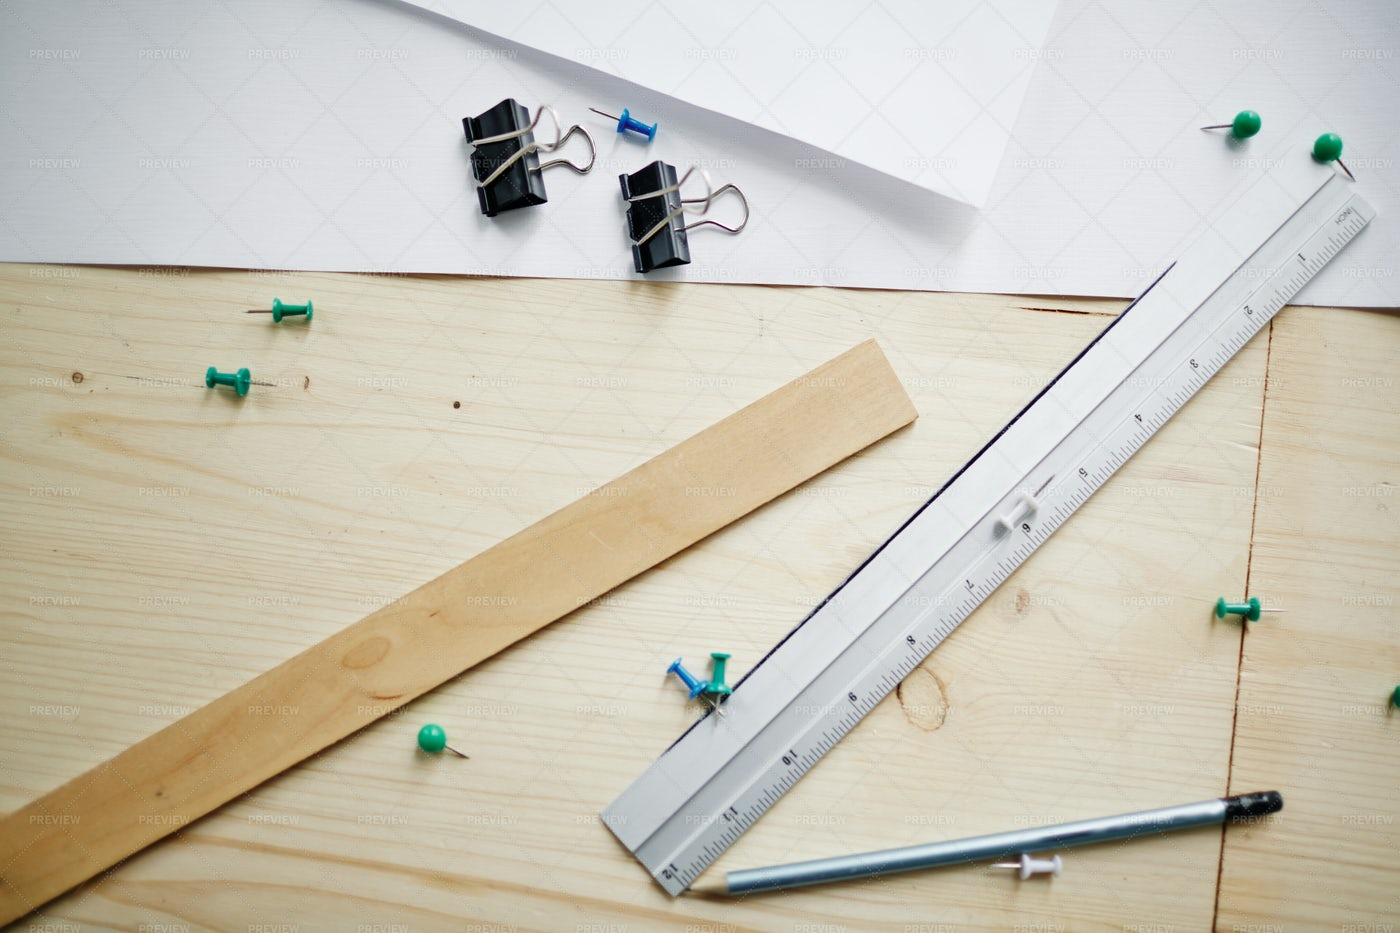 Top View Engineering Supplies On Table: Stock Photos